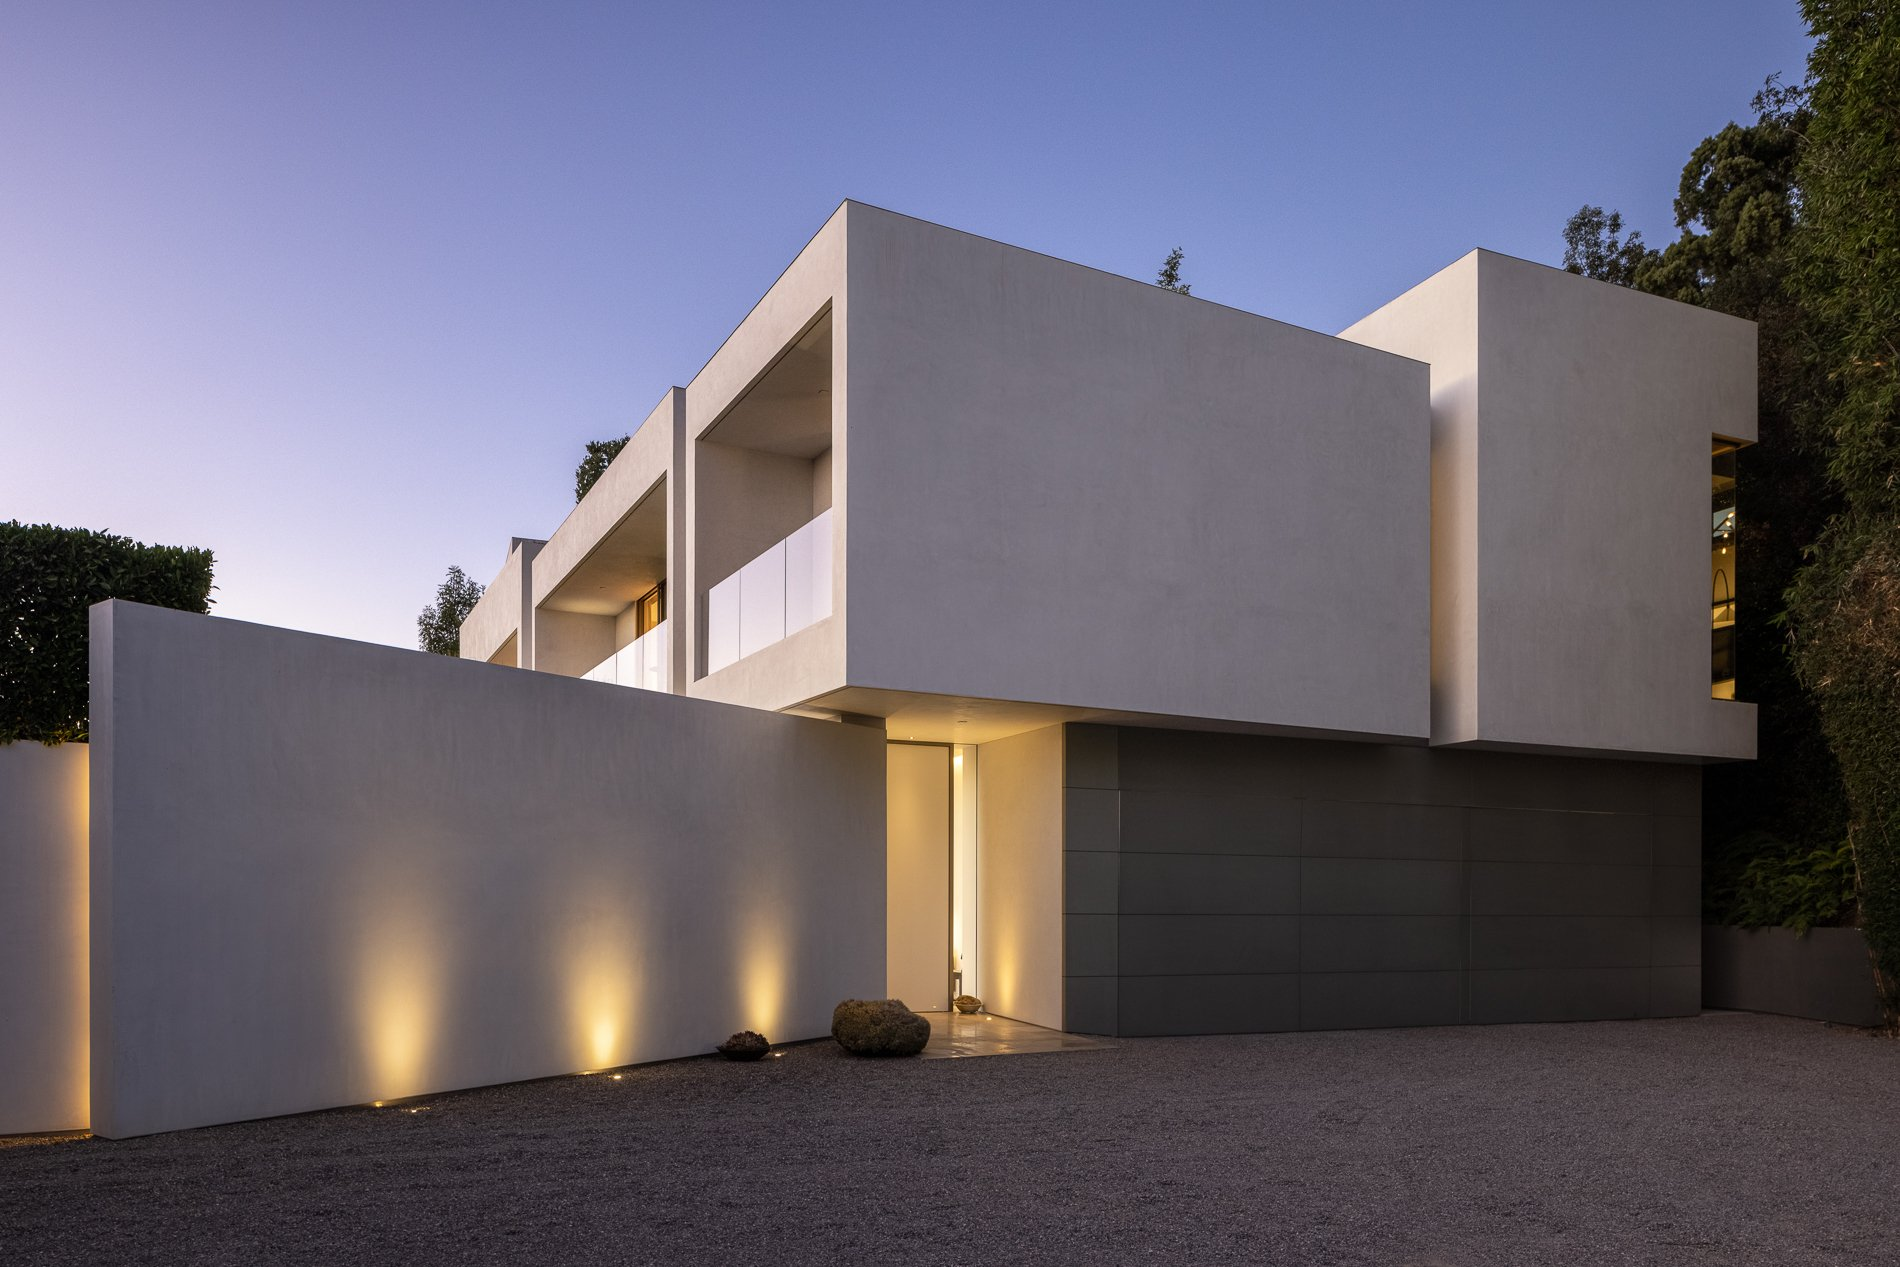 House in Los Angeles, California, United States 1 - 11658920